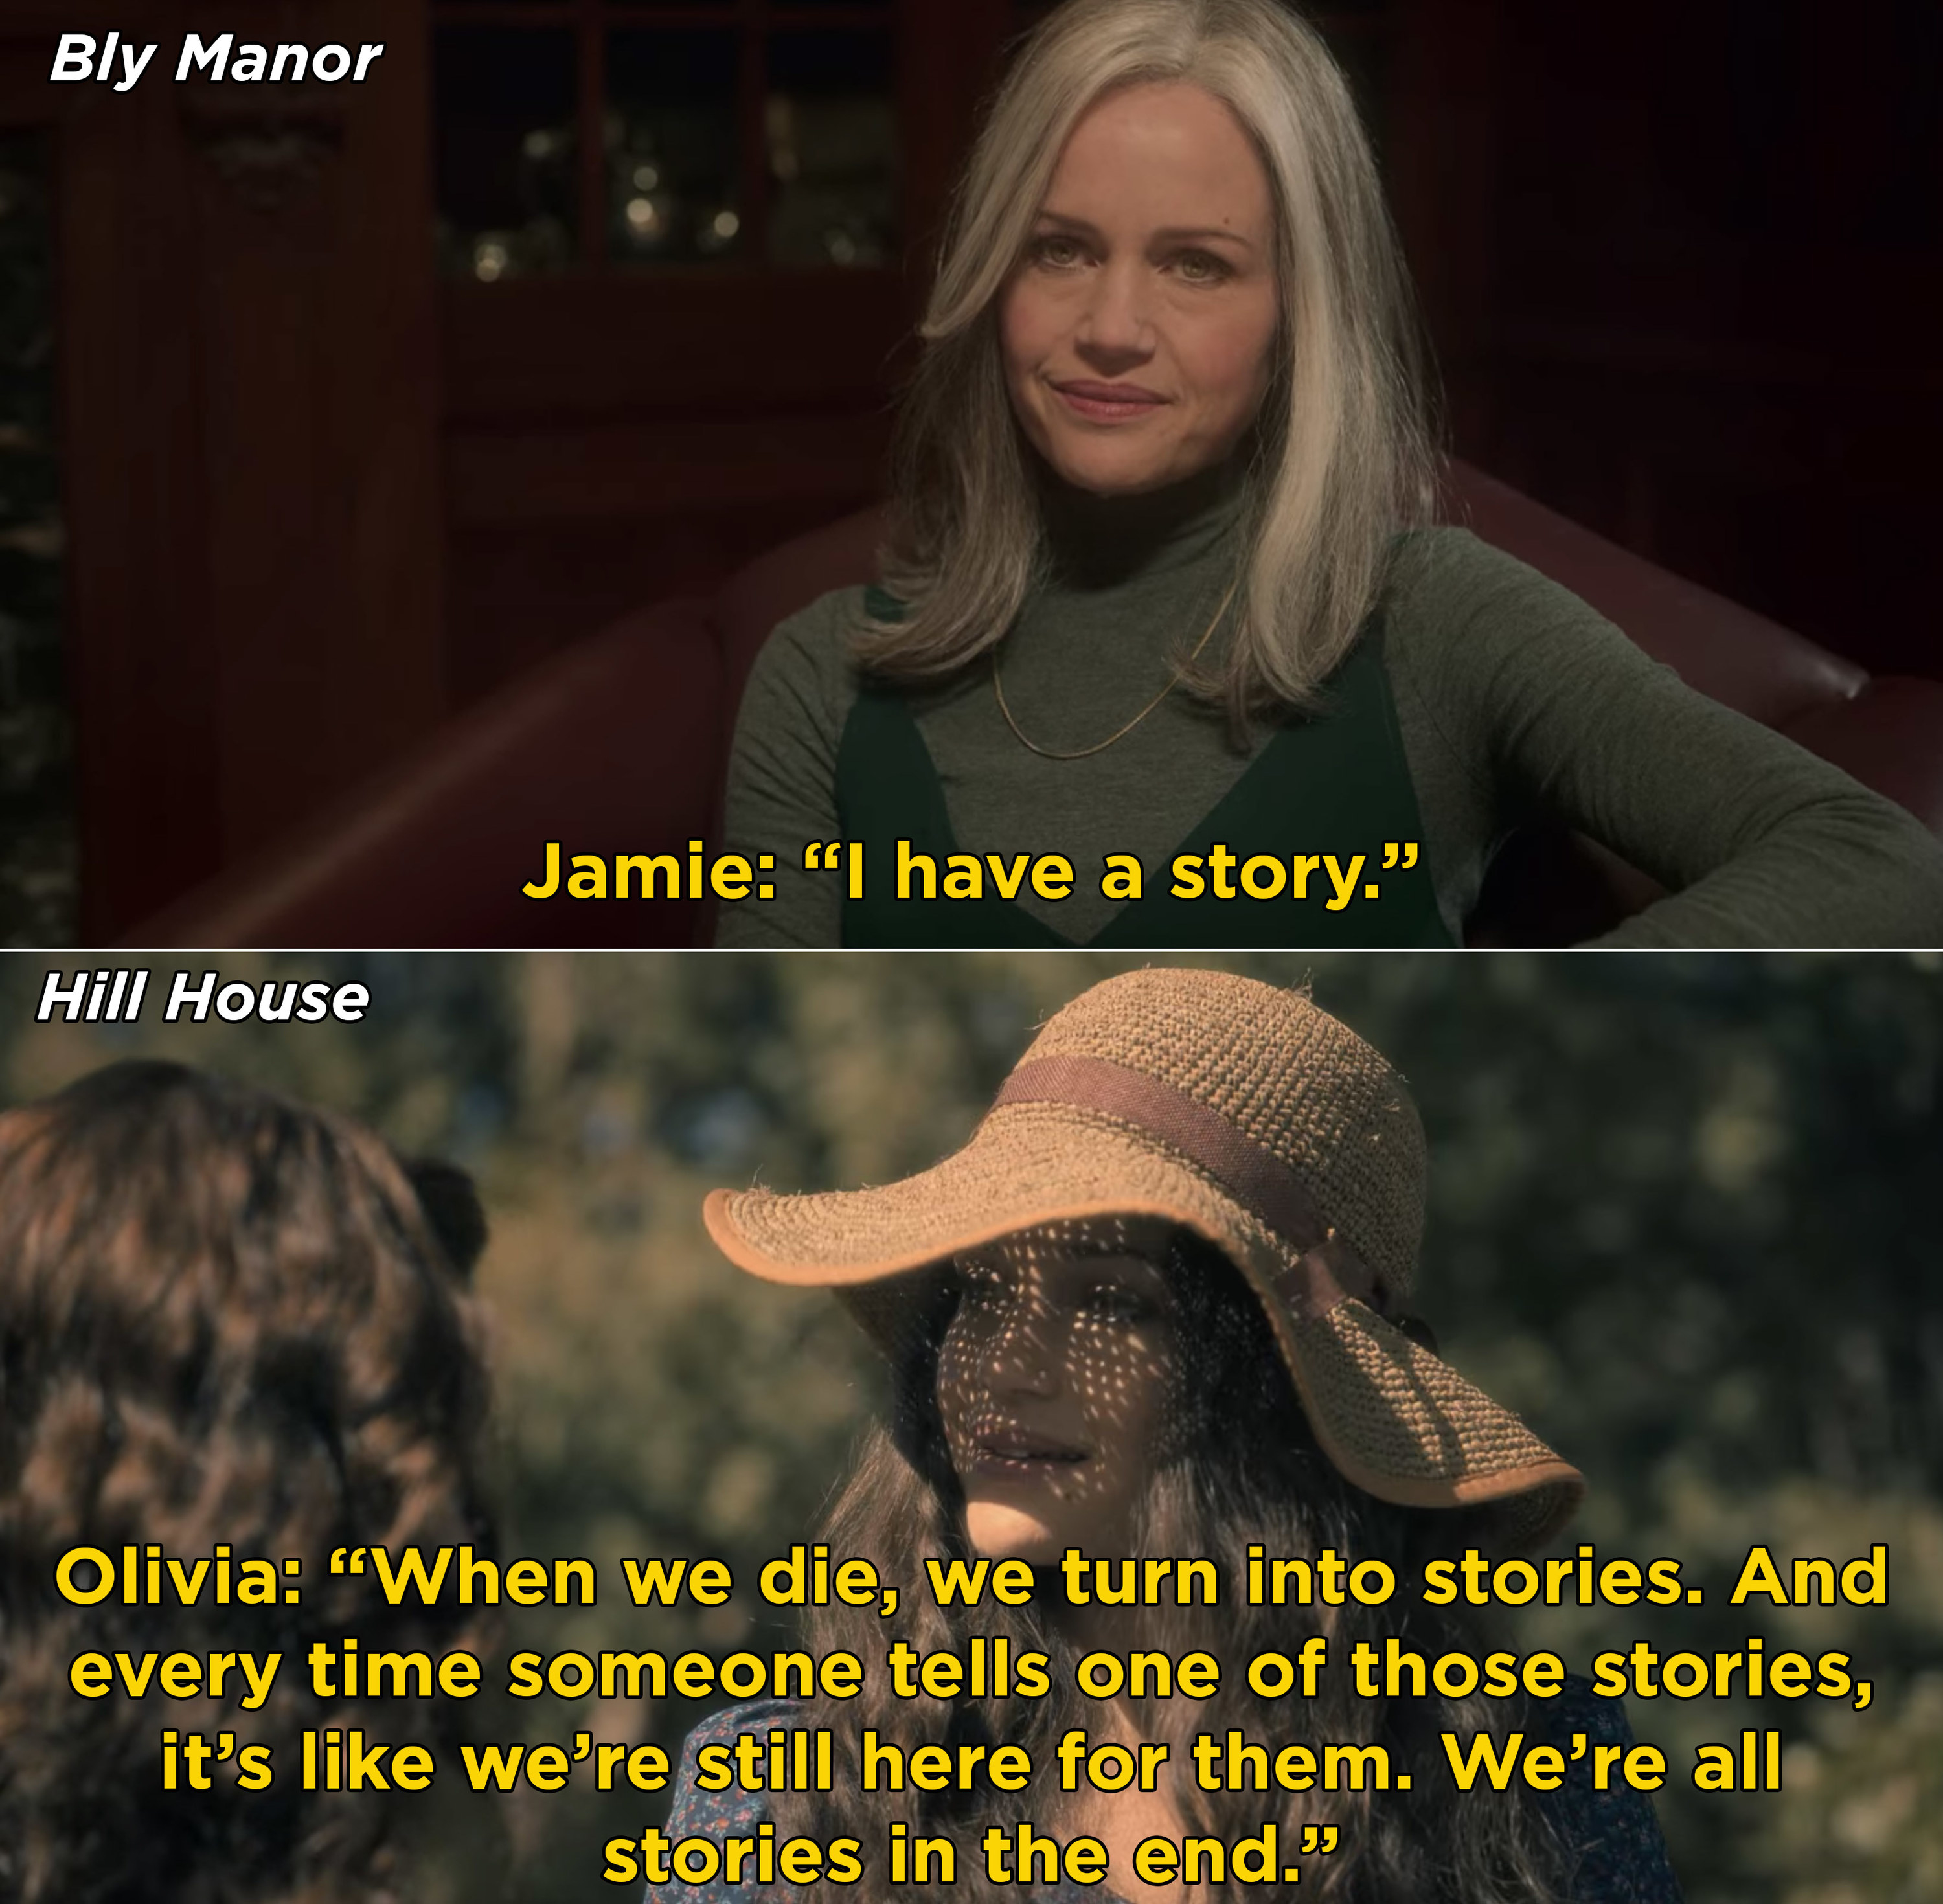 """Olivia telling Shirley that """"when we die we turn into stories. And every time someone tells one of those stories, it's like we're still here for them"""""""